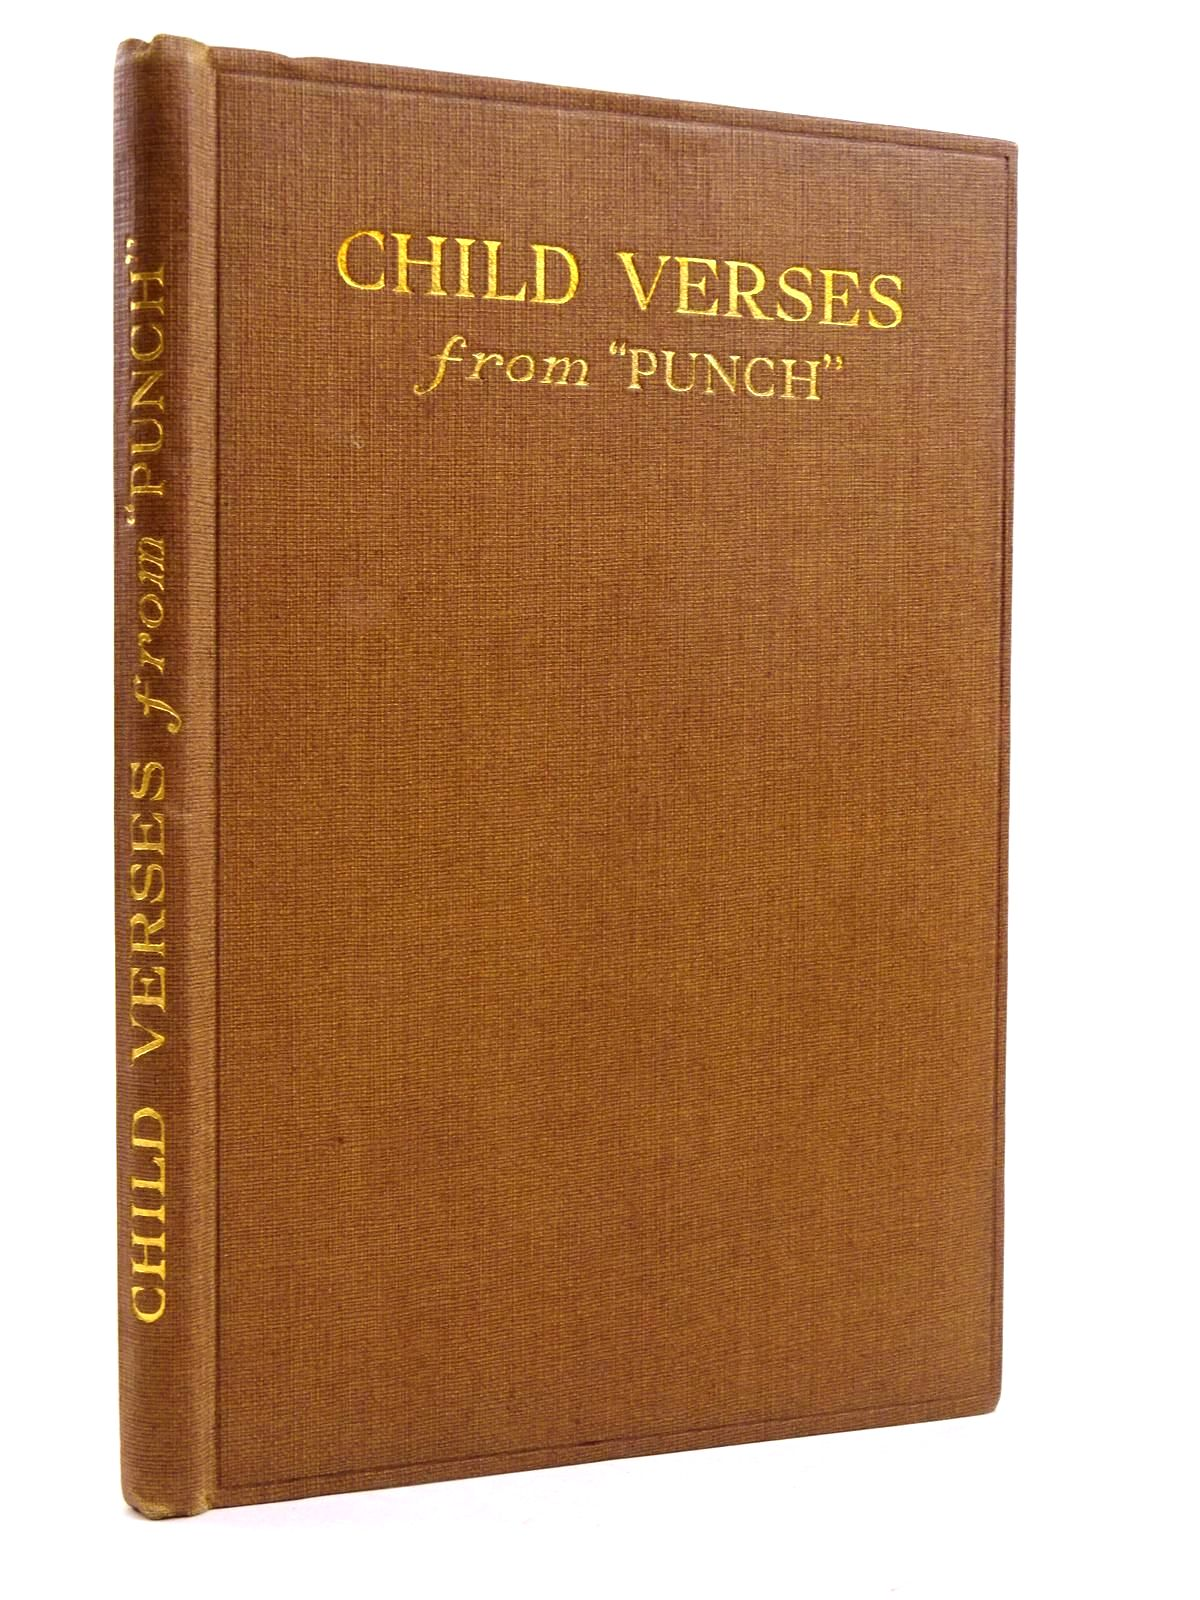 Photo of CHILD VERSES FROM 'PUNCH' written by Greenland, George Farjeon, Eleanor Talbot, Ethel et al,  illustrated by Chase, Phyllis published by J. Saville & Co. Ltd. (STOCK CODE: 2131626)  for sale by Stella & Rose's Books